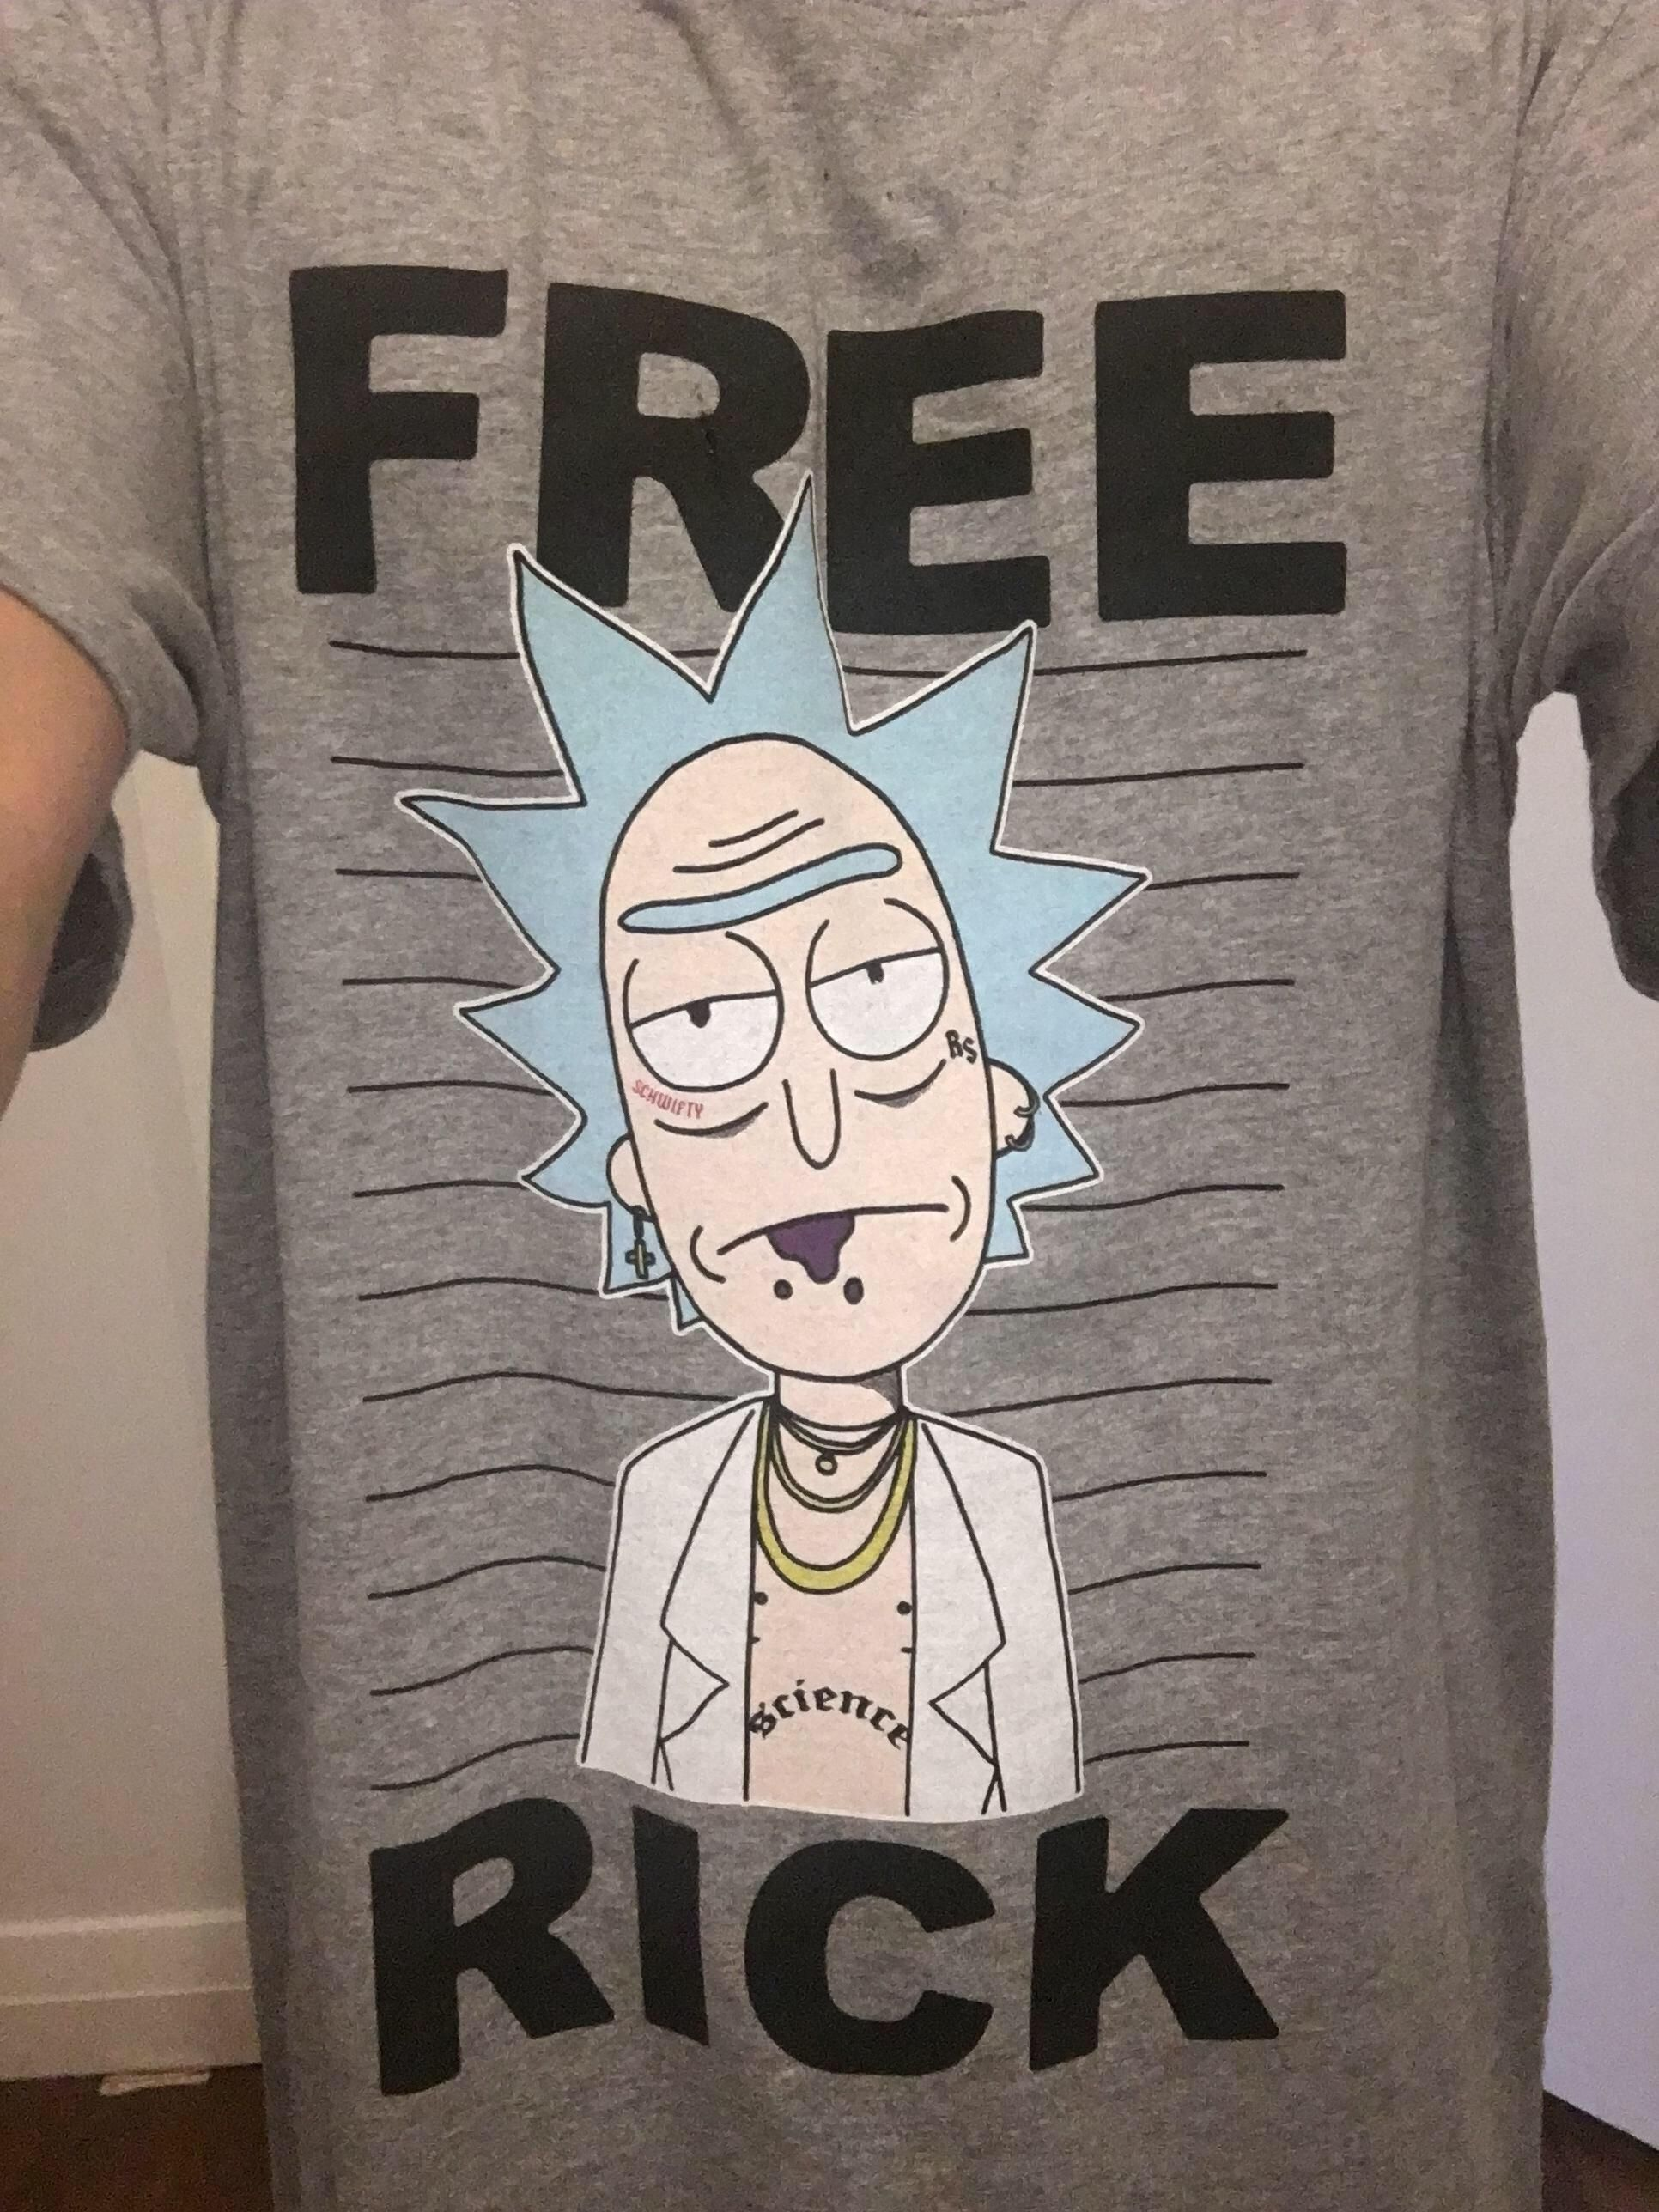 Wubba lubba dub dub get schwifty by avshirtdesigns my brother got me this i think its pretty neat rickandmorty rick picklerick